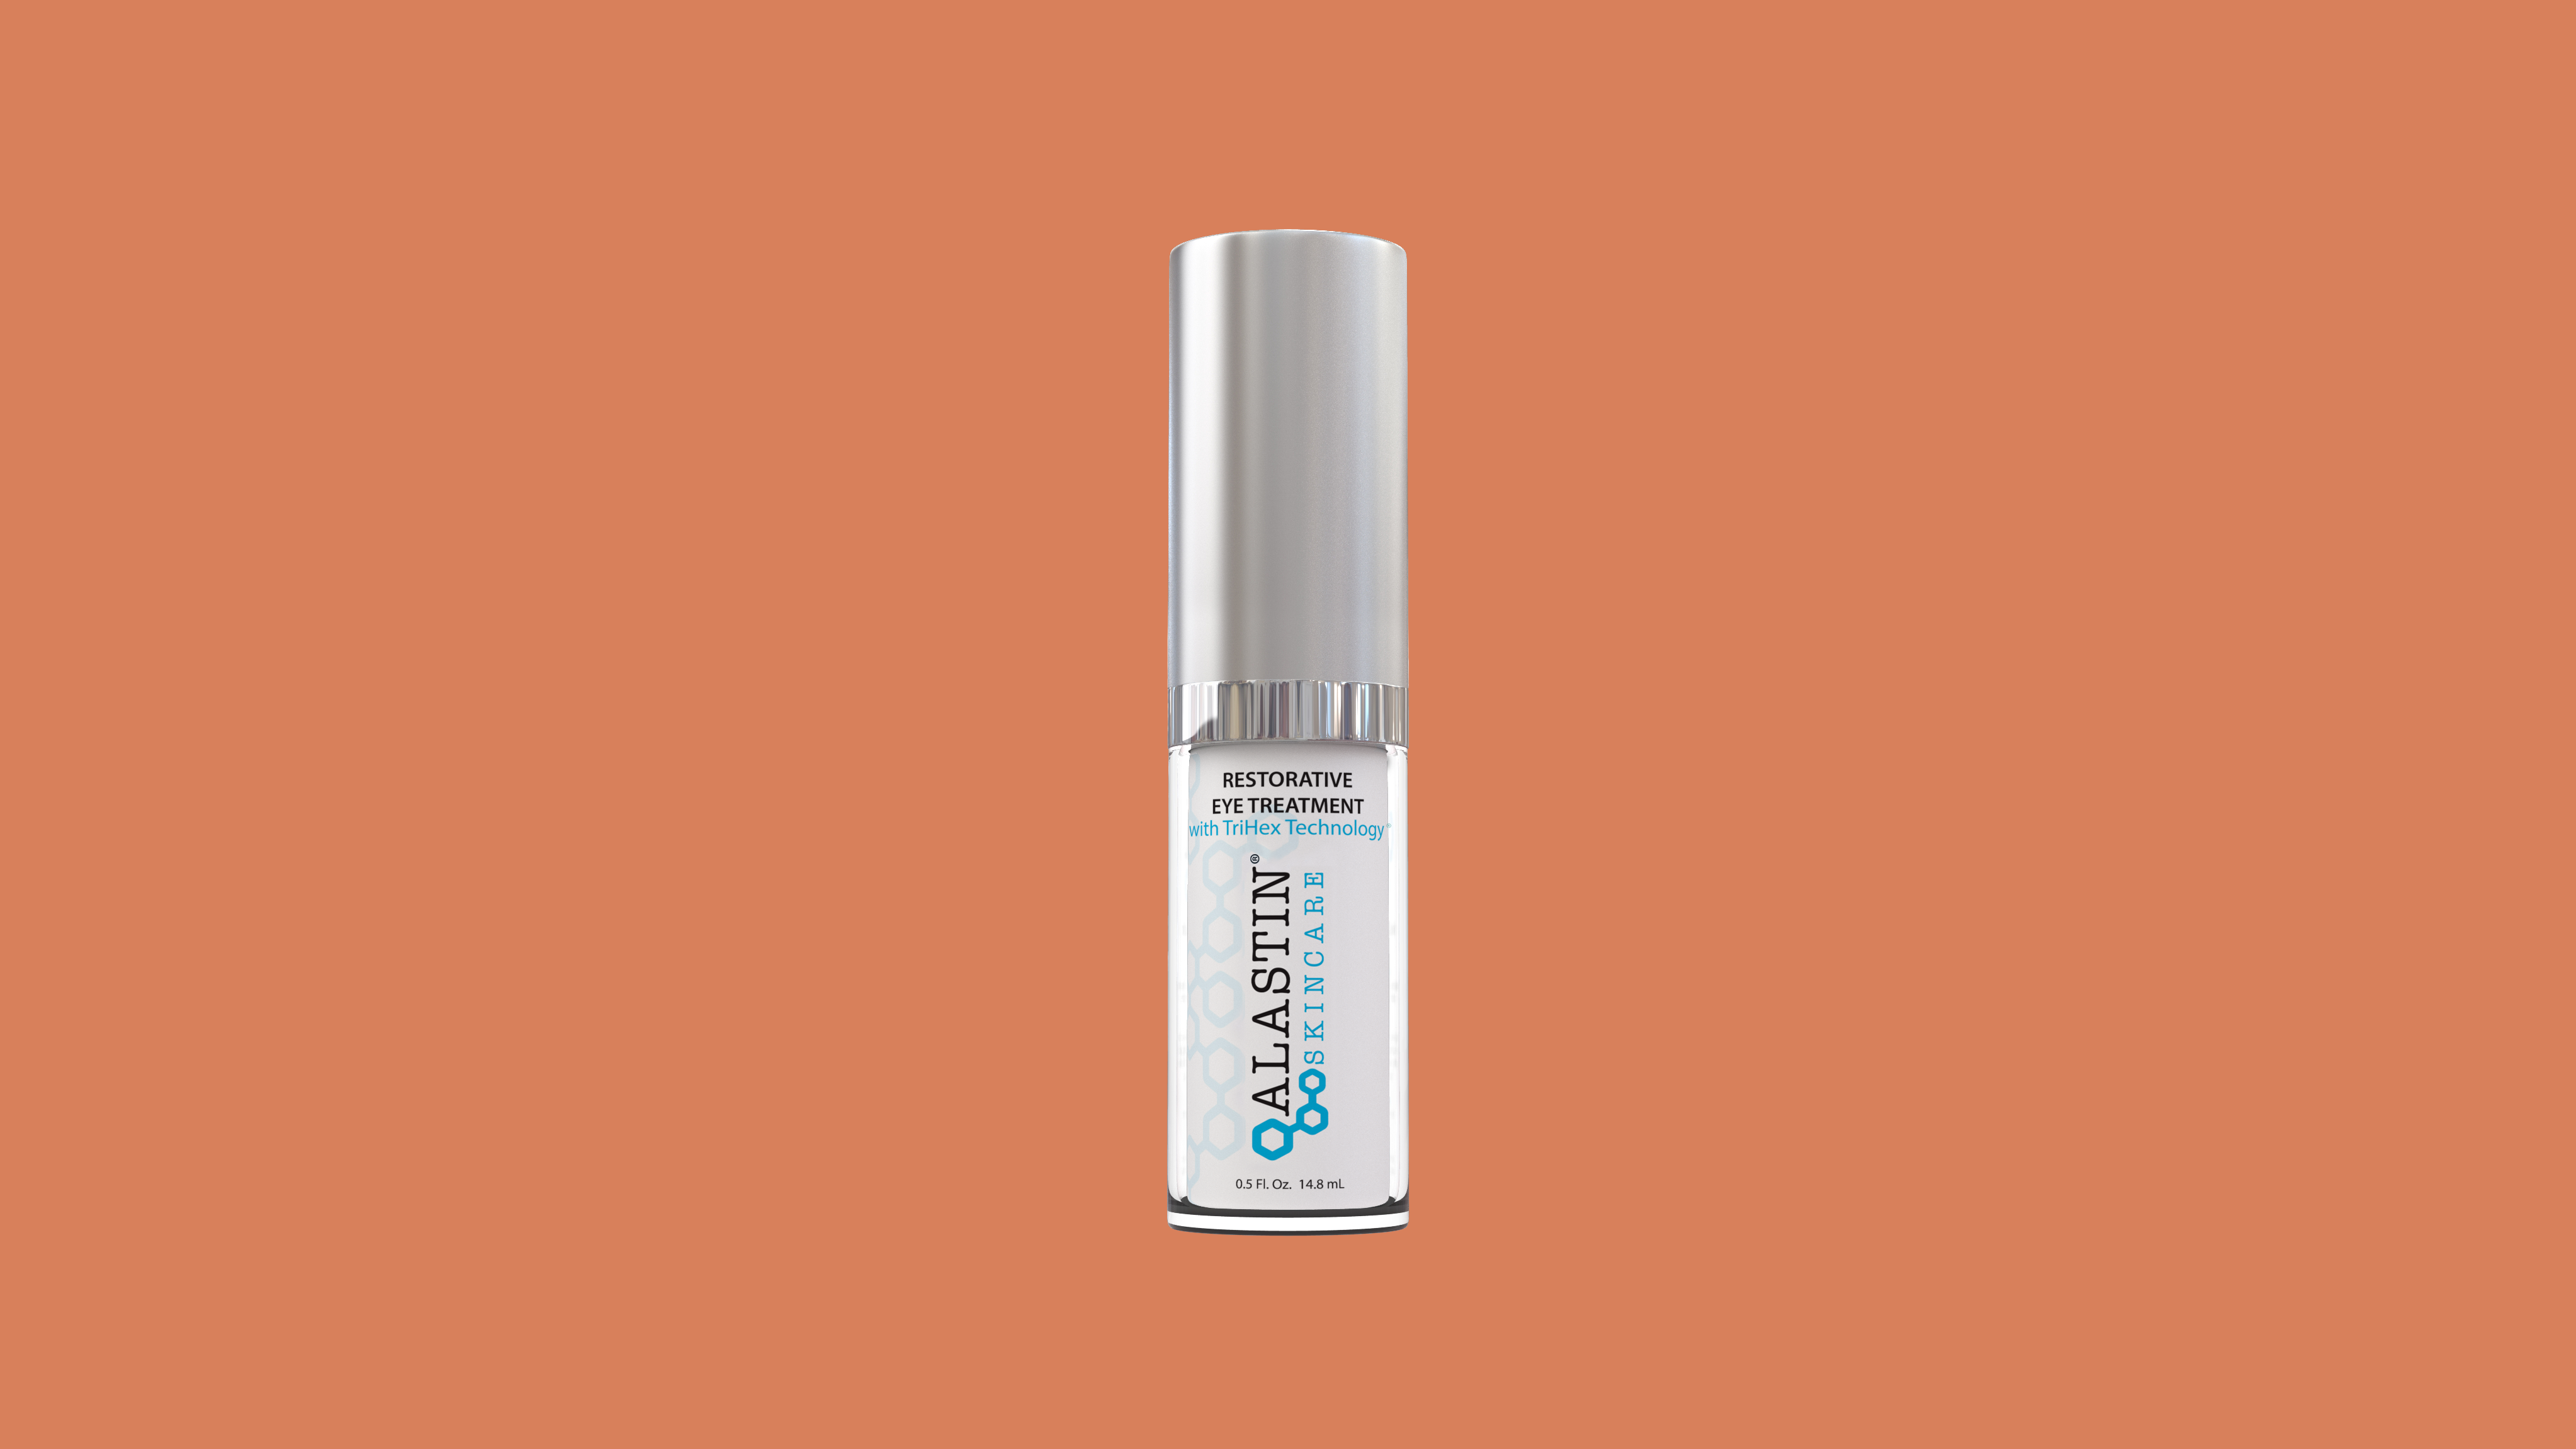 Alastin Skincare Restorative Eye Treatment with TriHex Technology